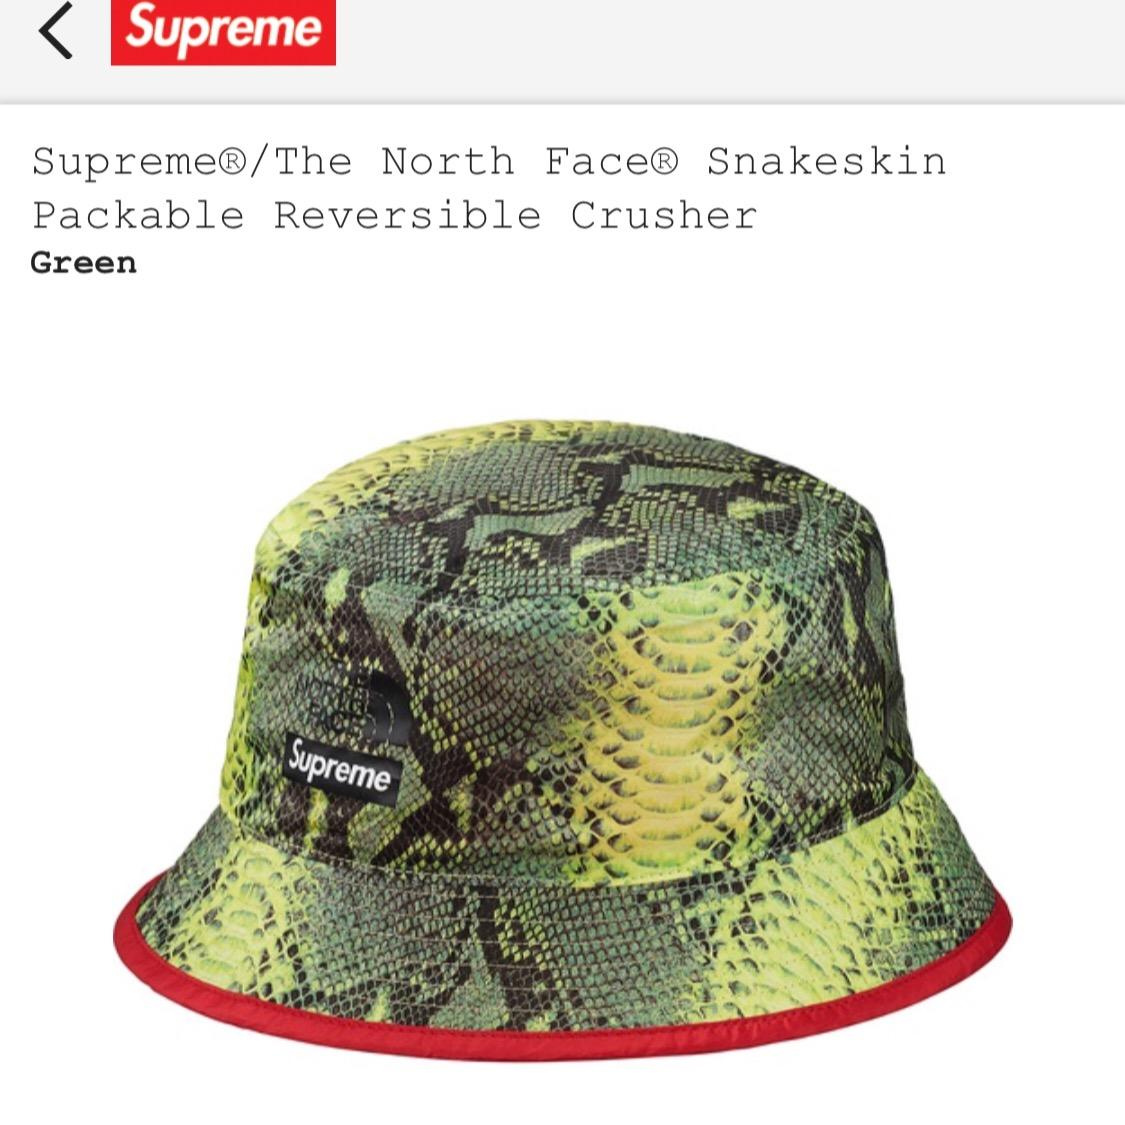 8bd22aaa20e Supreme X The North Face snakeskin reversible packable crusher ...